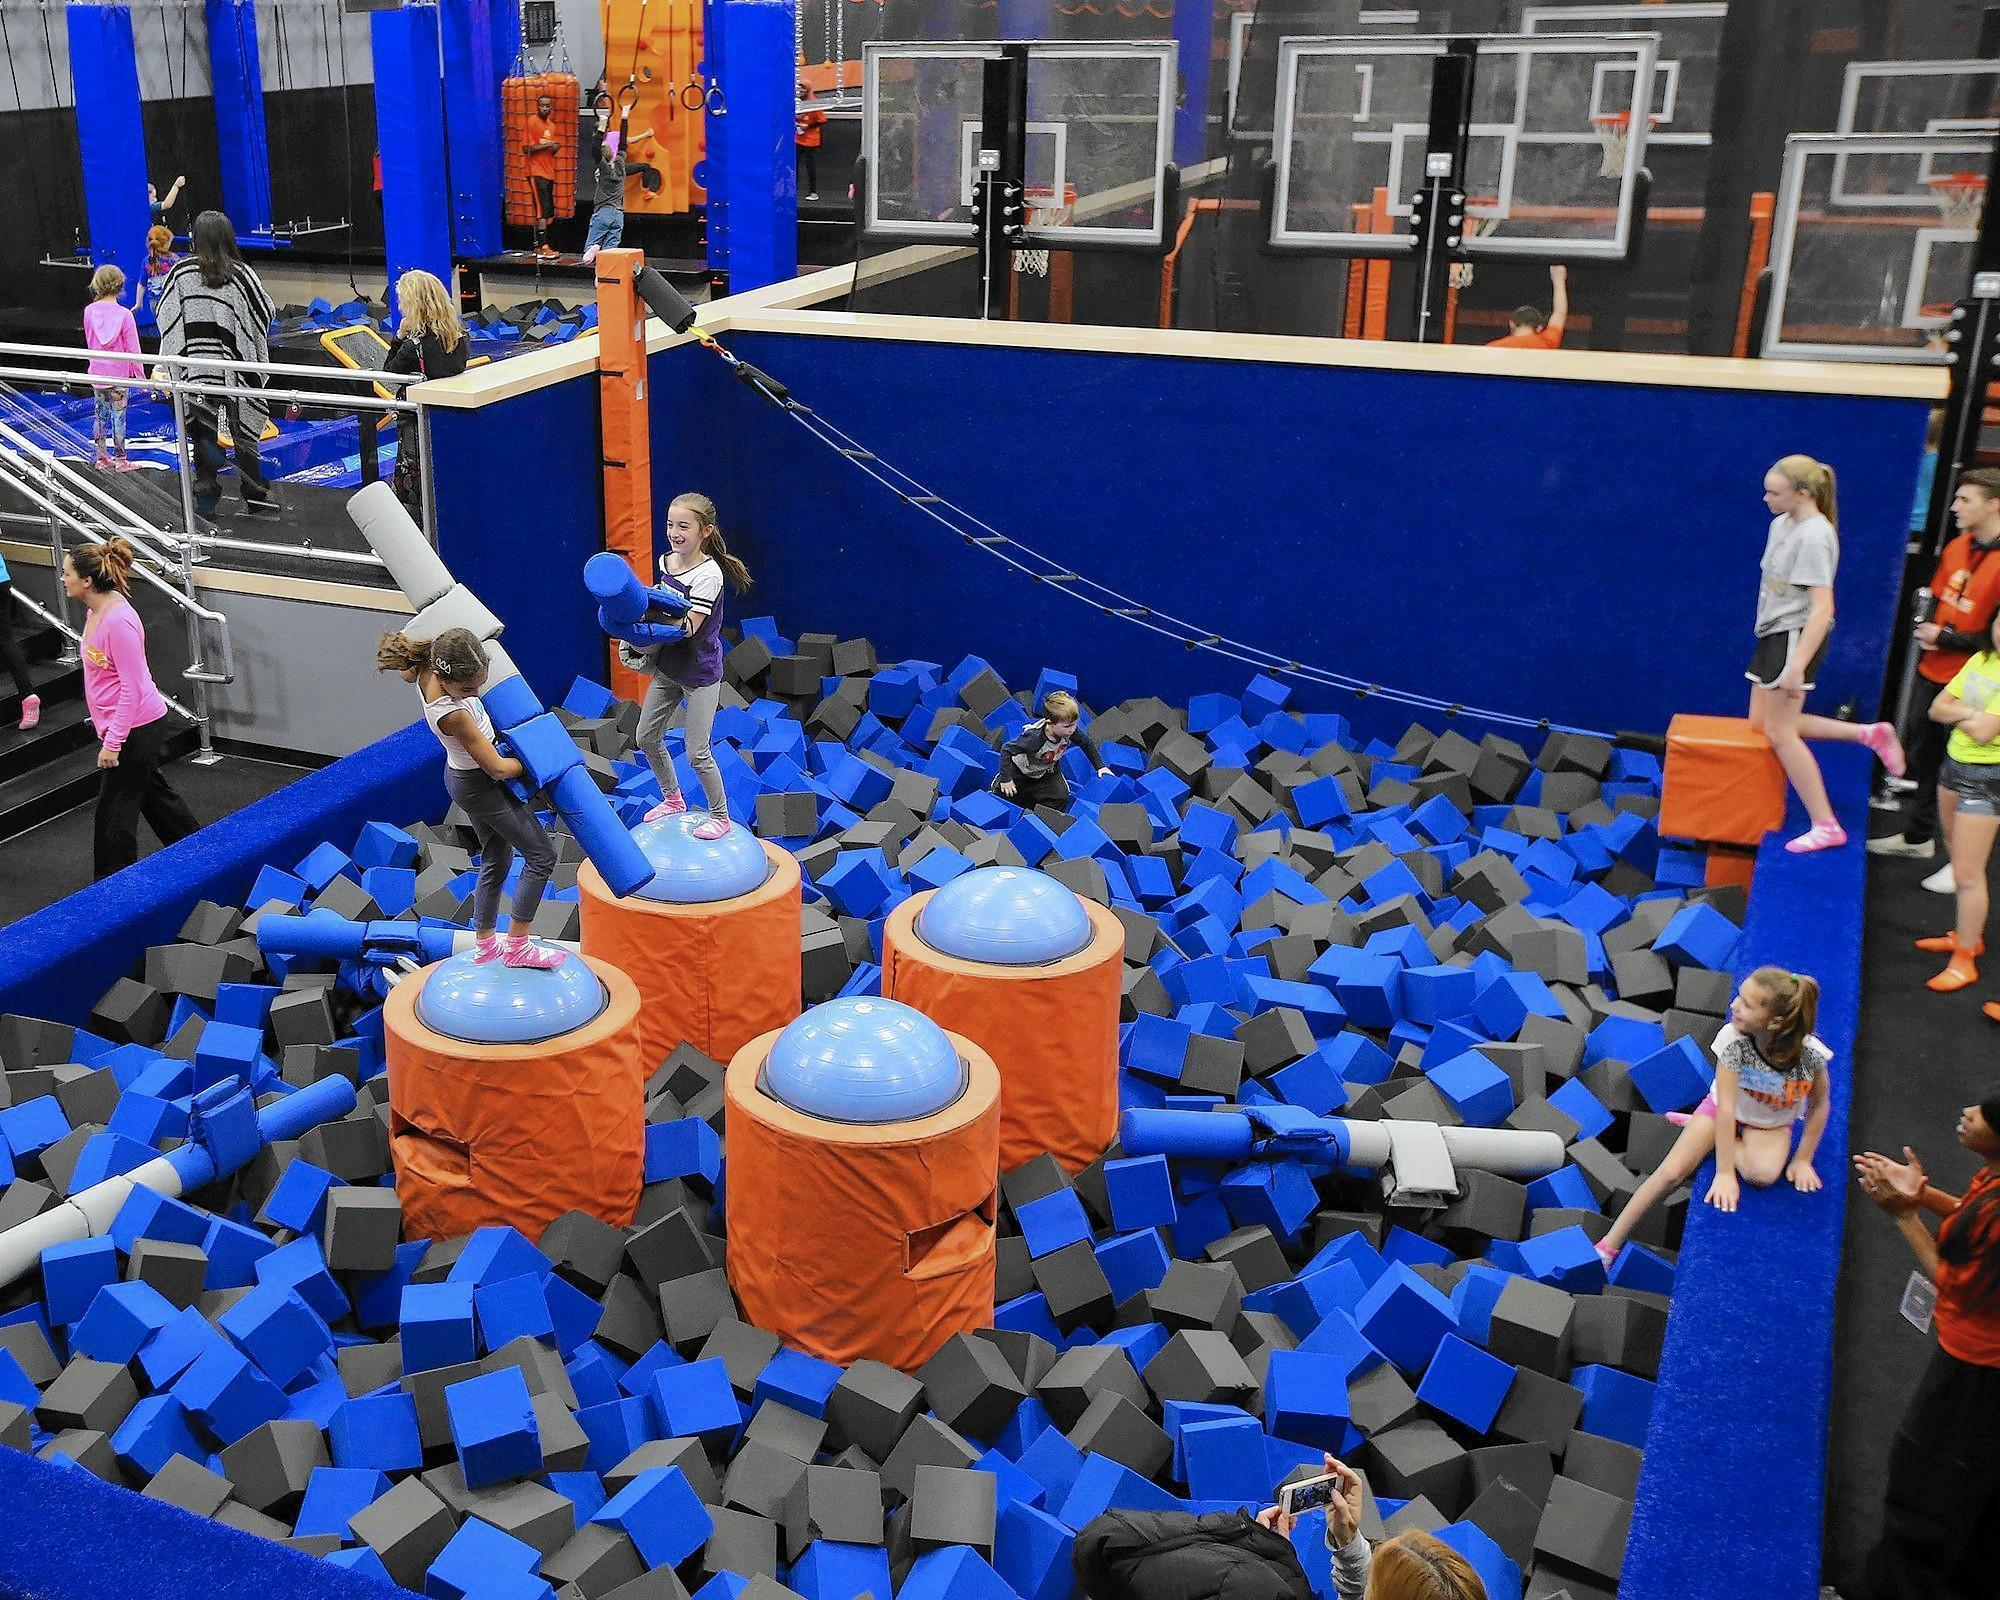 Trampoline Park Indoor Soccer Facility May Come To Vernon